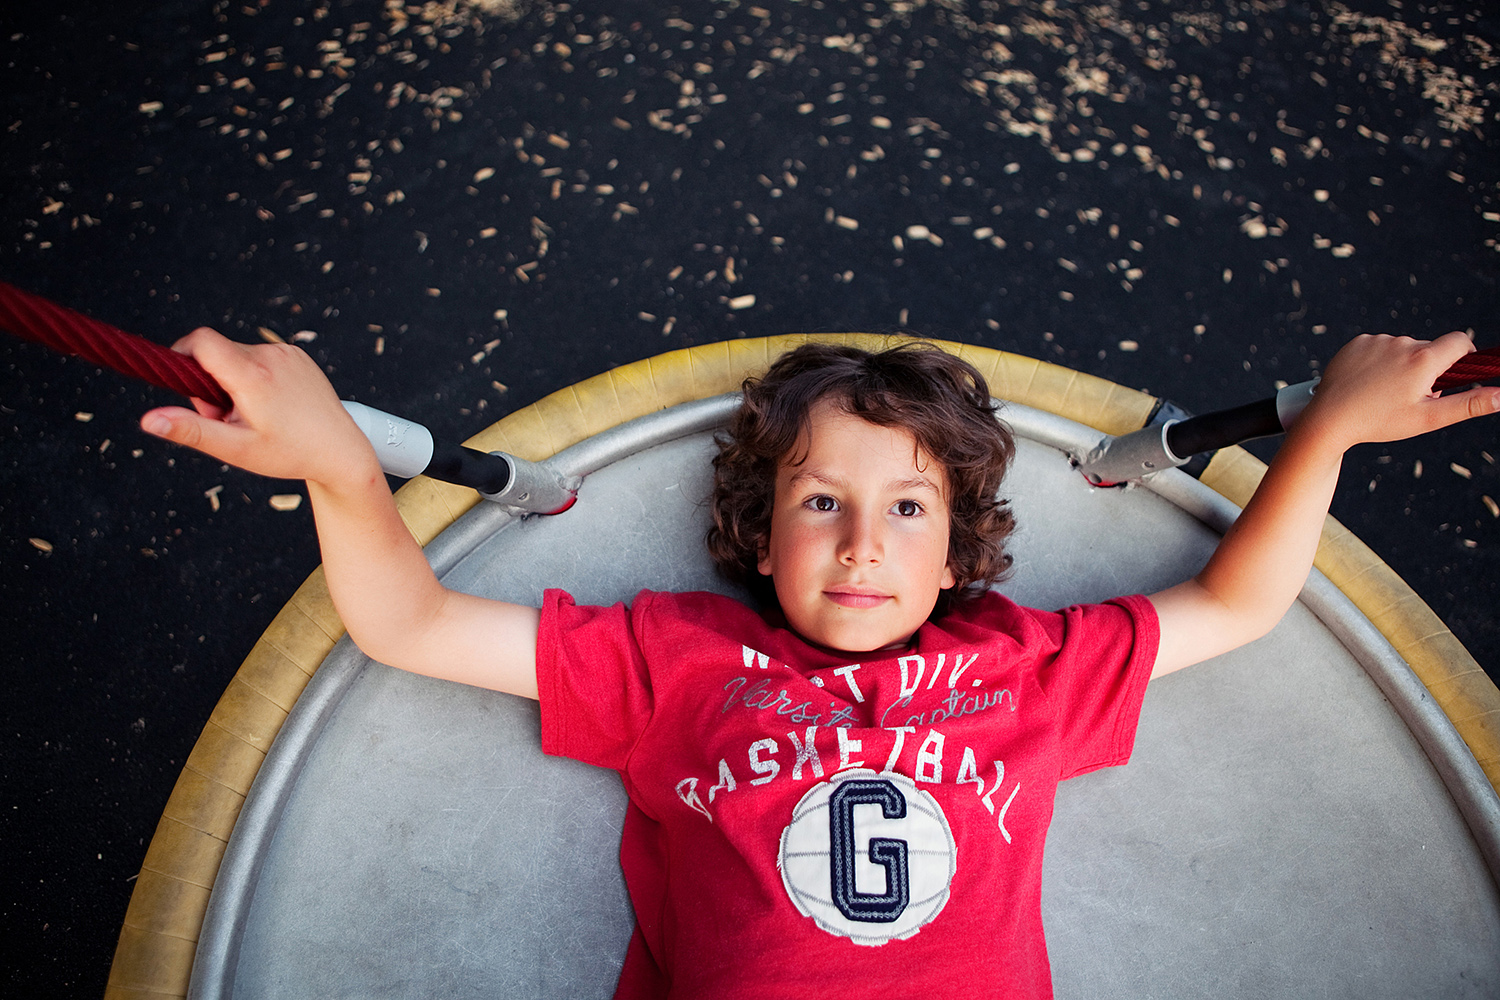 Boy with curly hair on a playground saucer